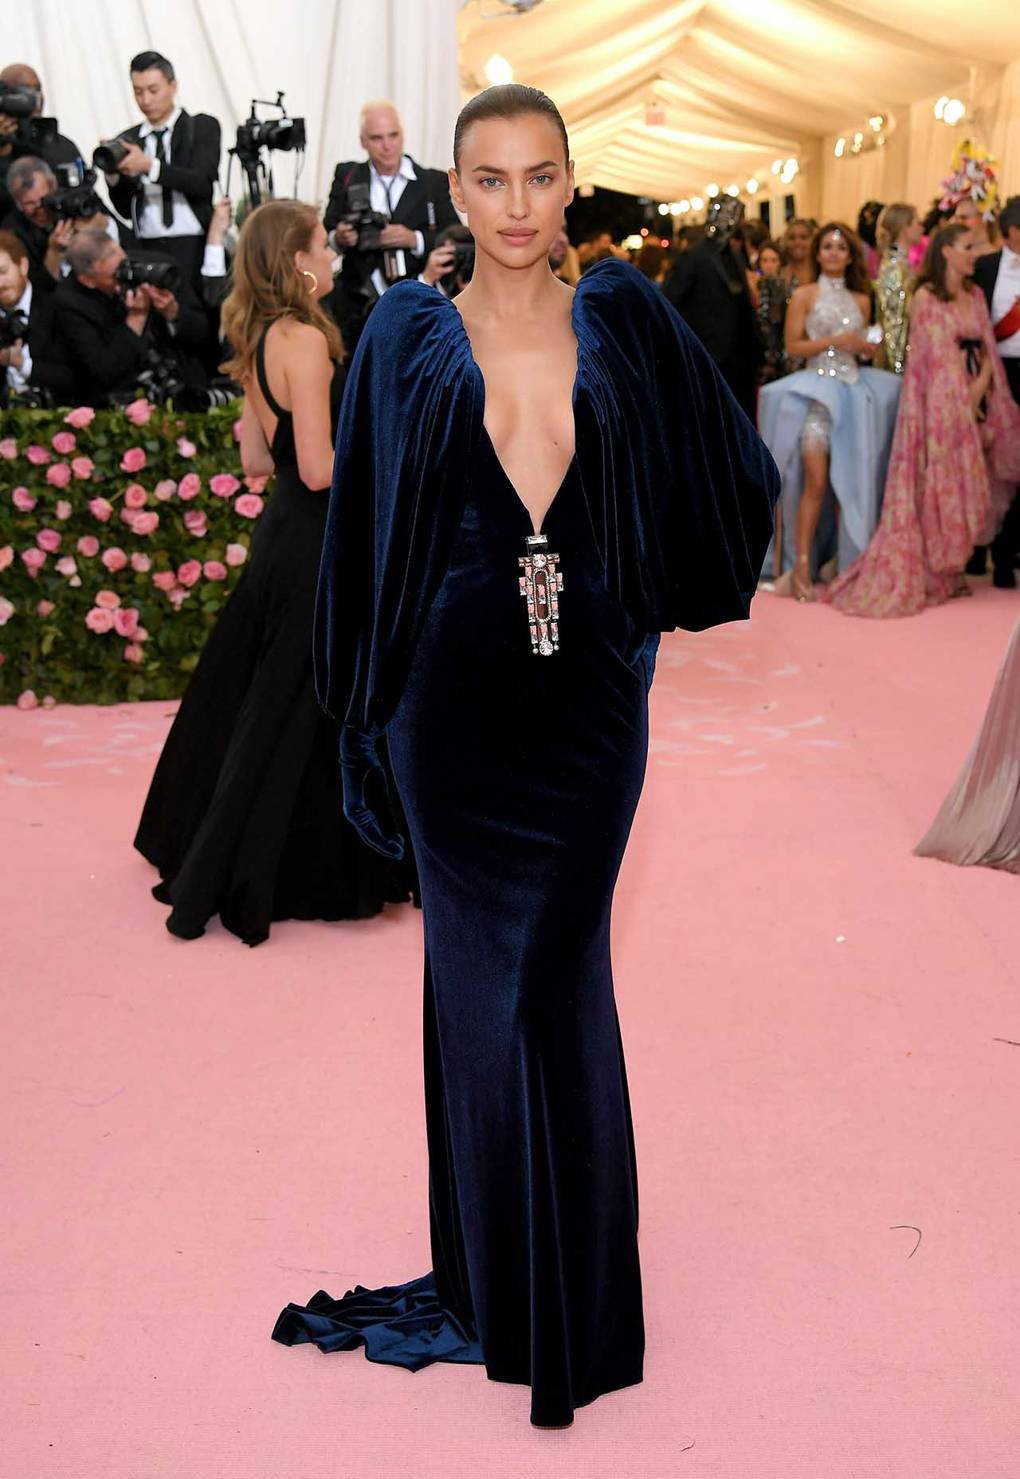 Irina Shayk wearing Burberry - Velvet dreams!!! So many velvet dresses have been made over the years, some beautiful other not so much! This gorgeous number including matching gloves has me going crazy, the rich blue, full sleeves, deep v neckline with art deco esque jewel to finish really makes me go wow. Understated camp which is so glam!